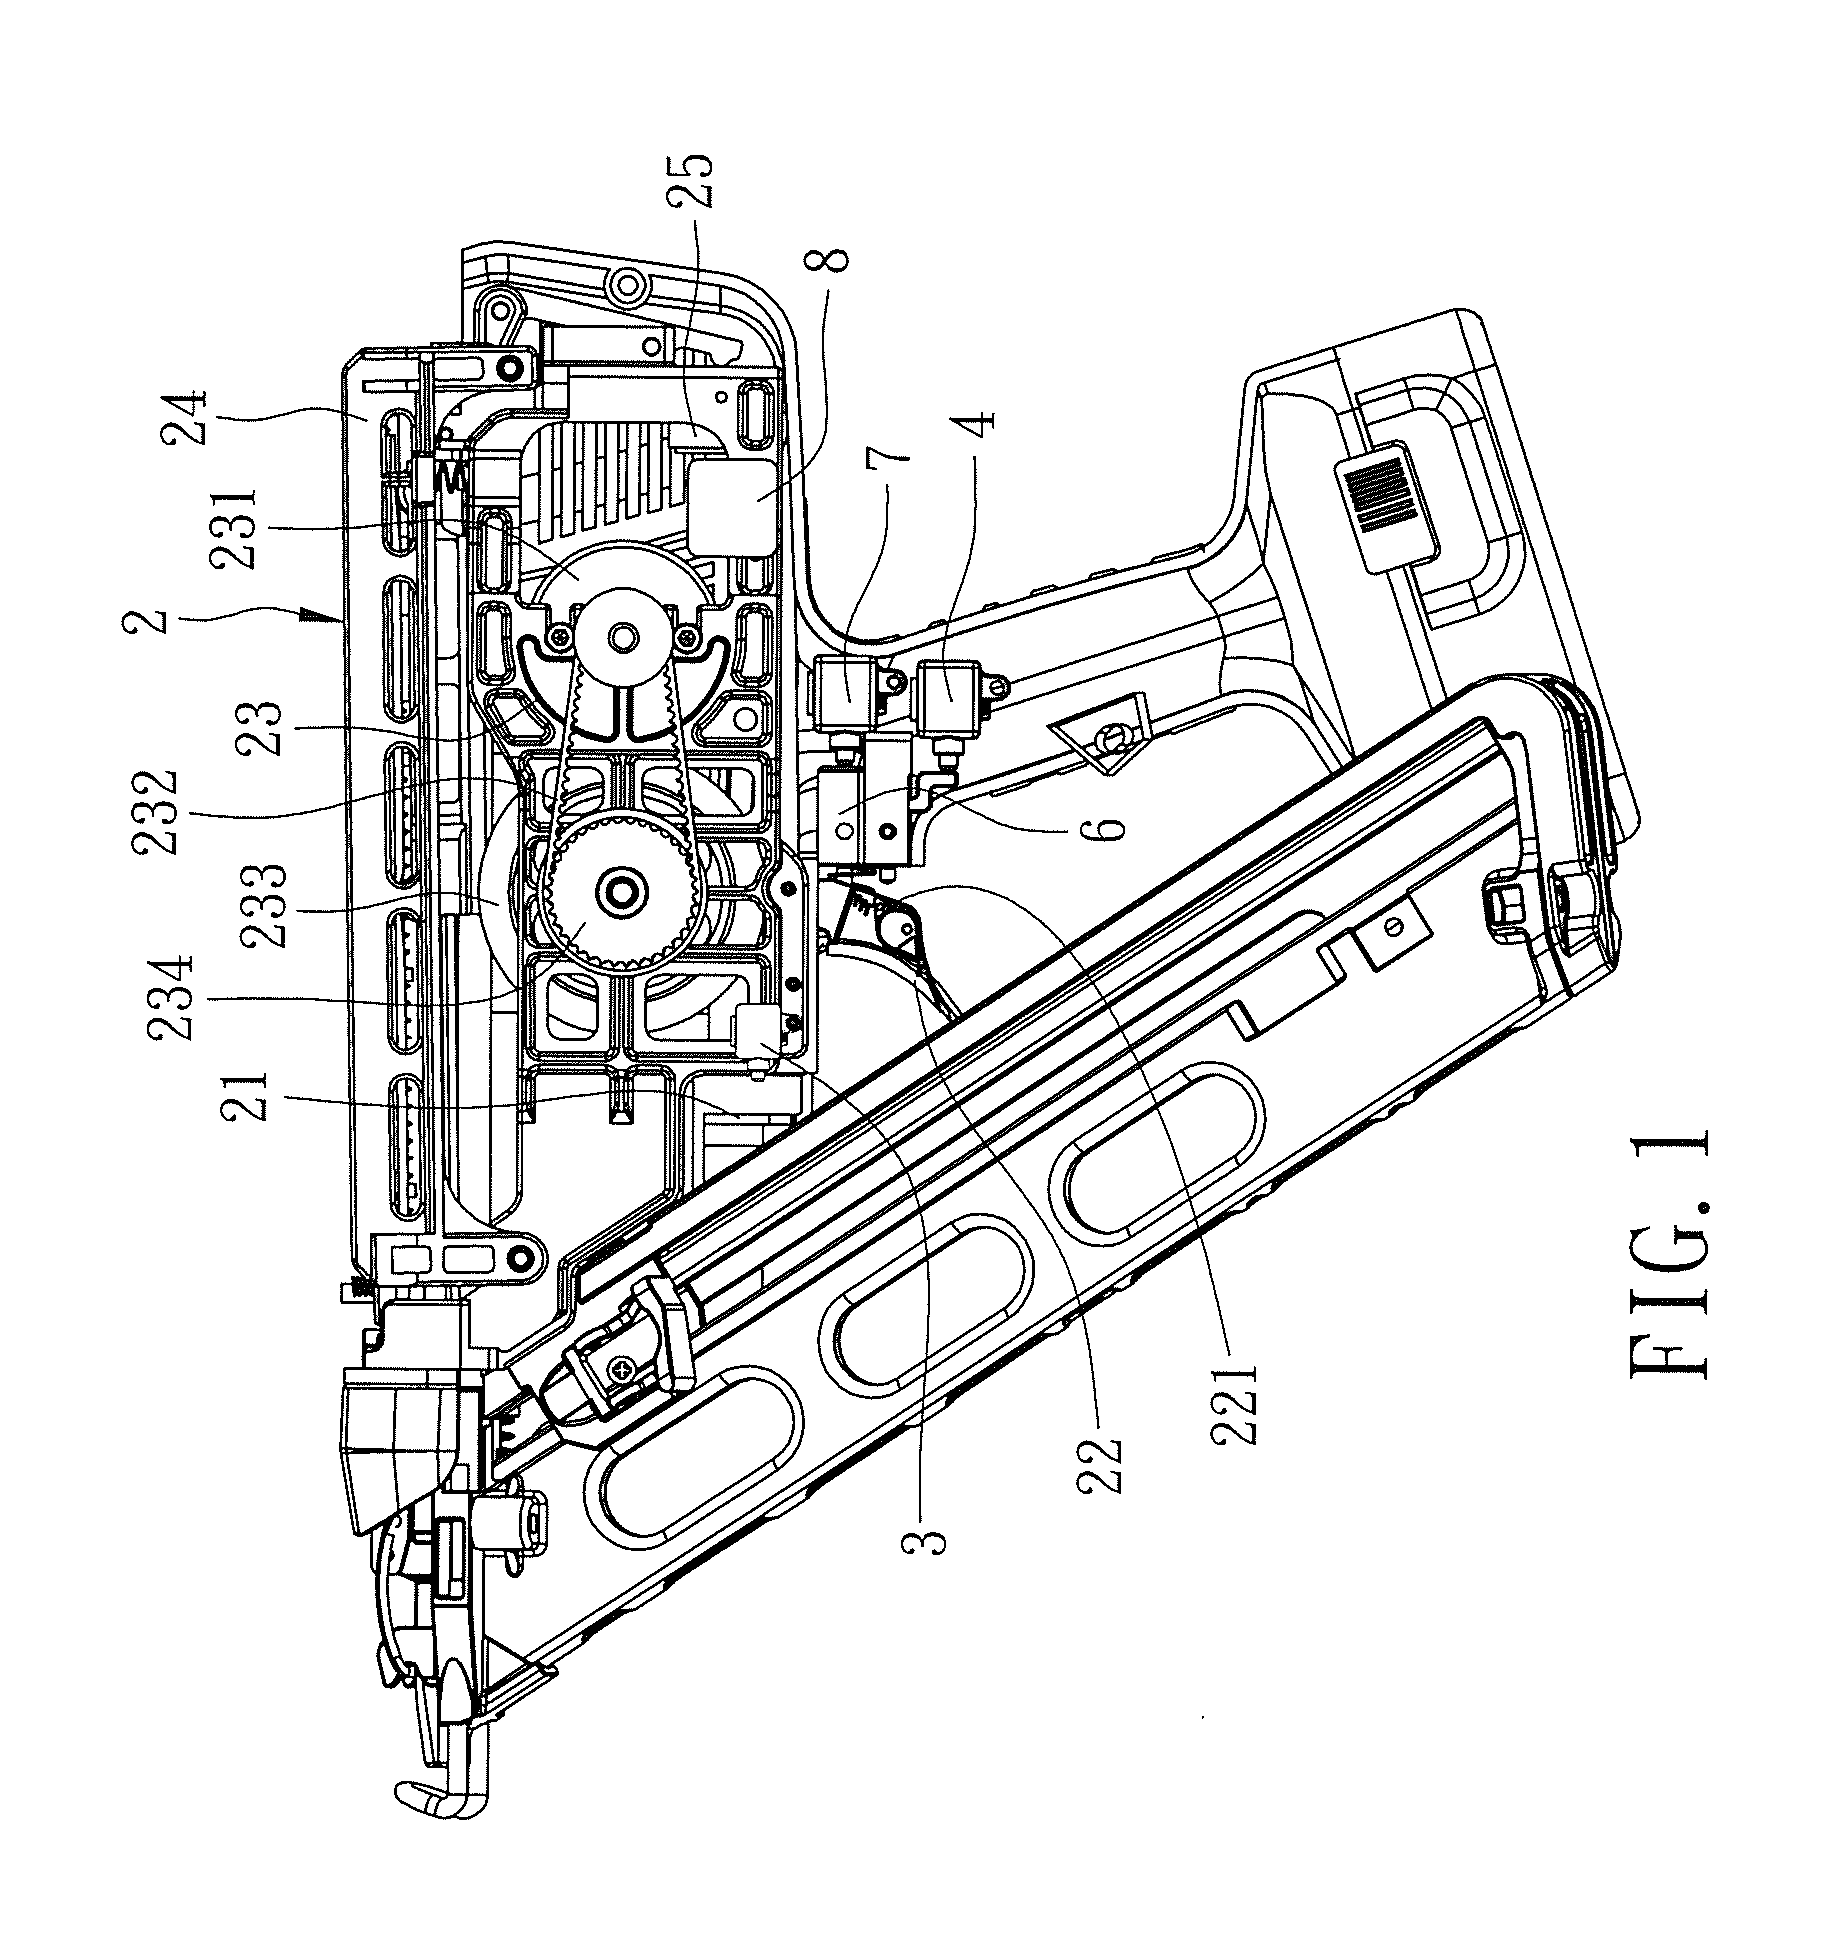 patent us20120104069 - control mechanism for electric nail gun